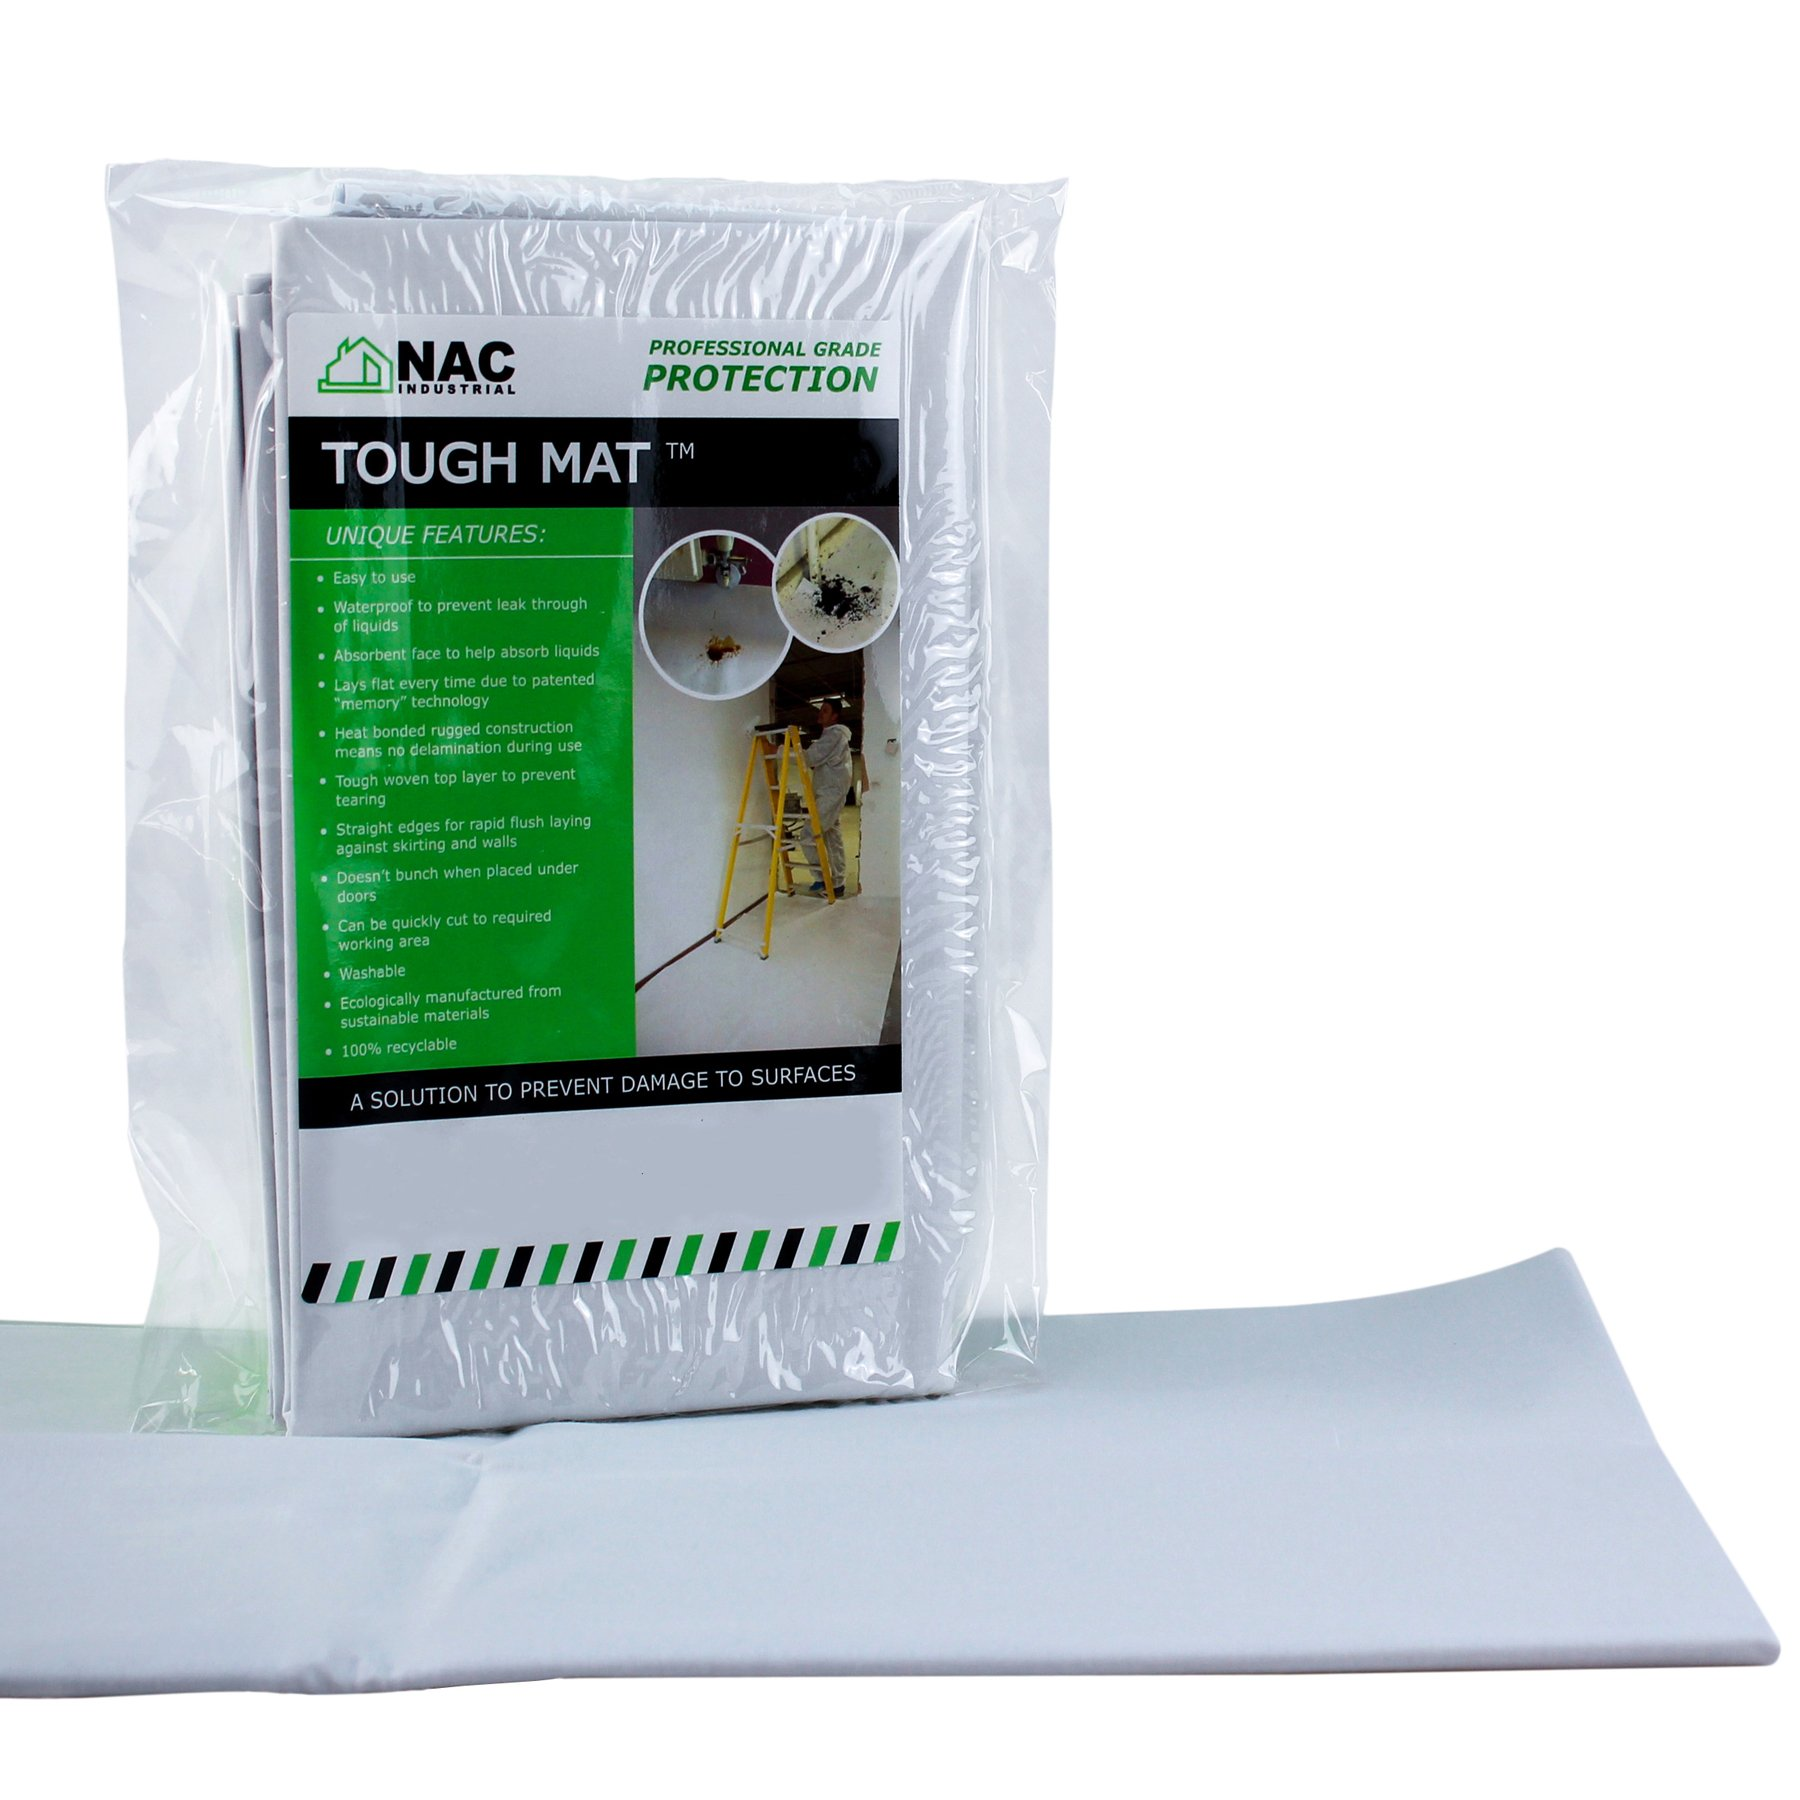 NAC INDUSTRIAL Waterproof Canvas Drop Cloth TOUGH MAT 4' x 4' - Professional Surface Protection